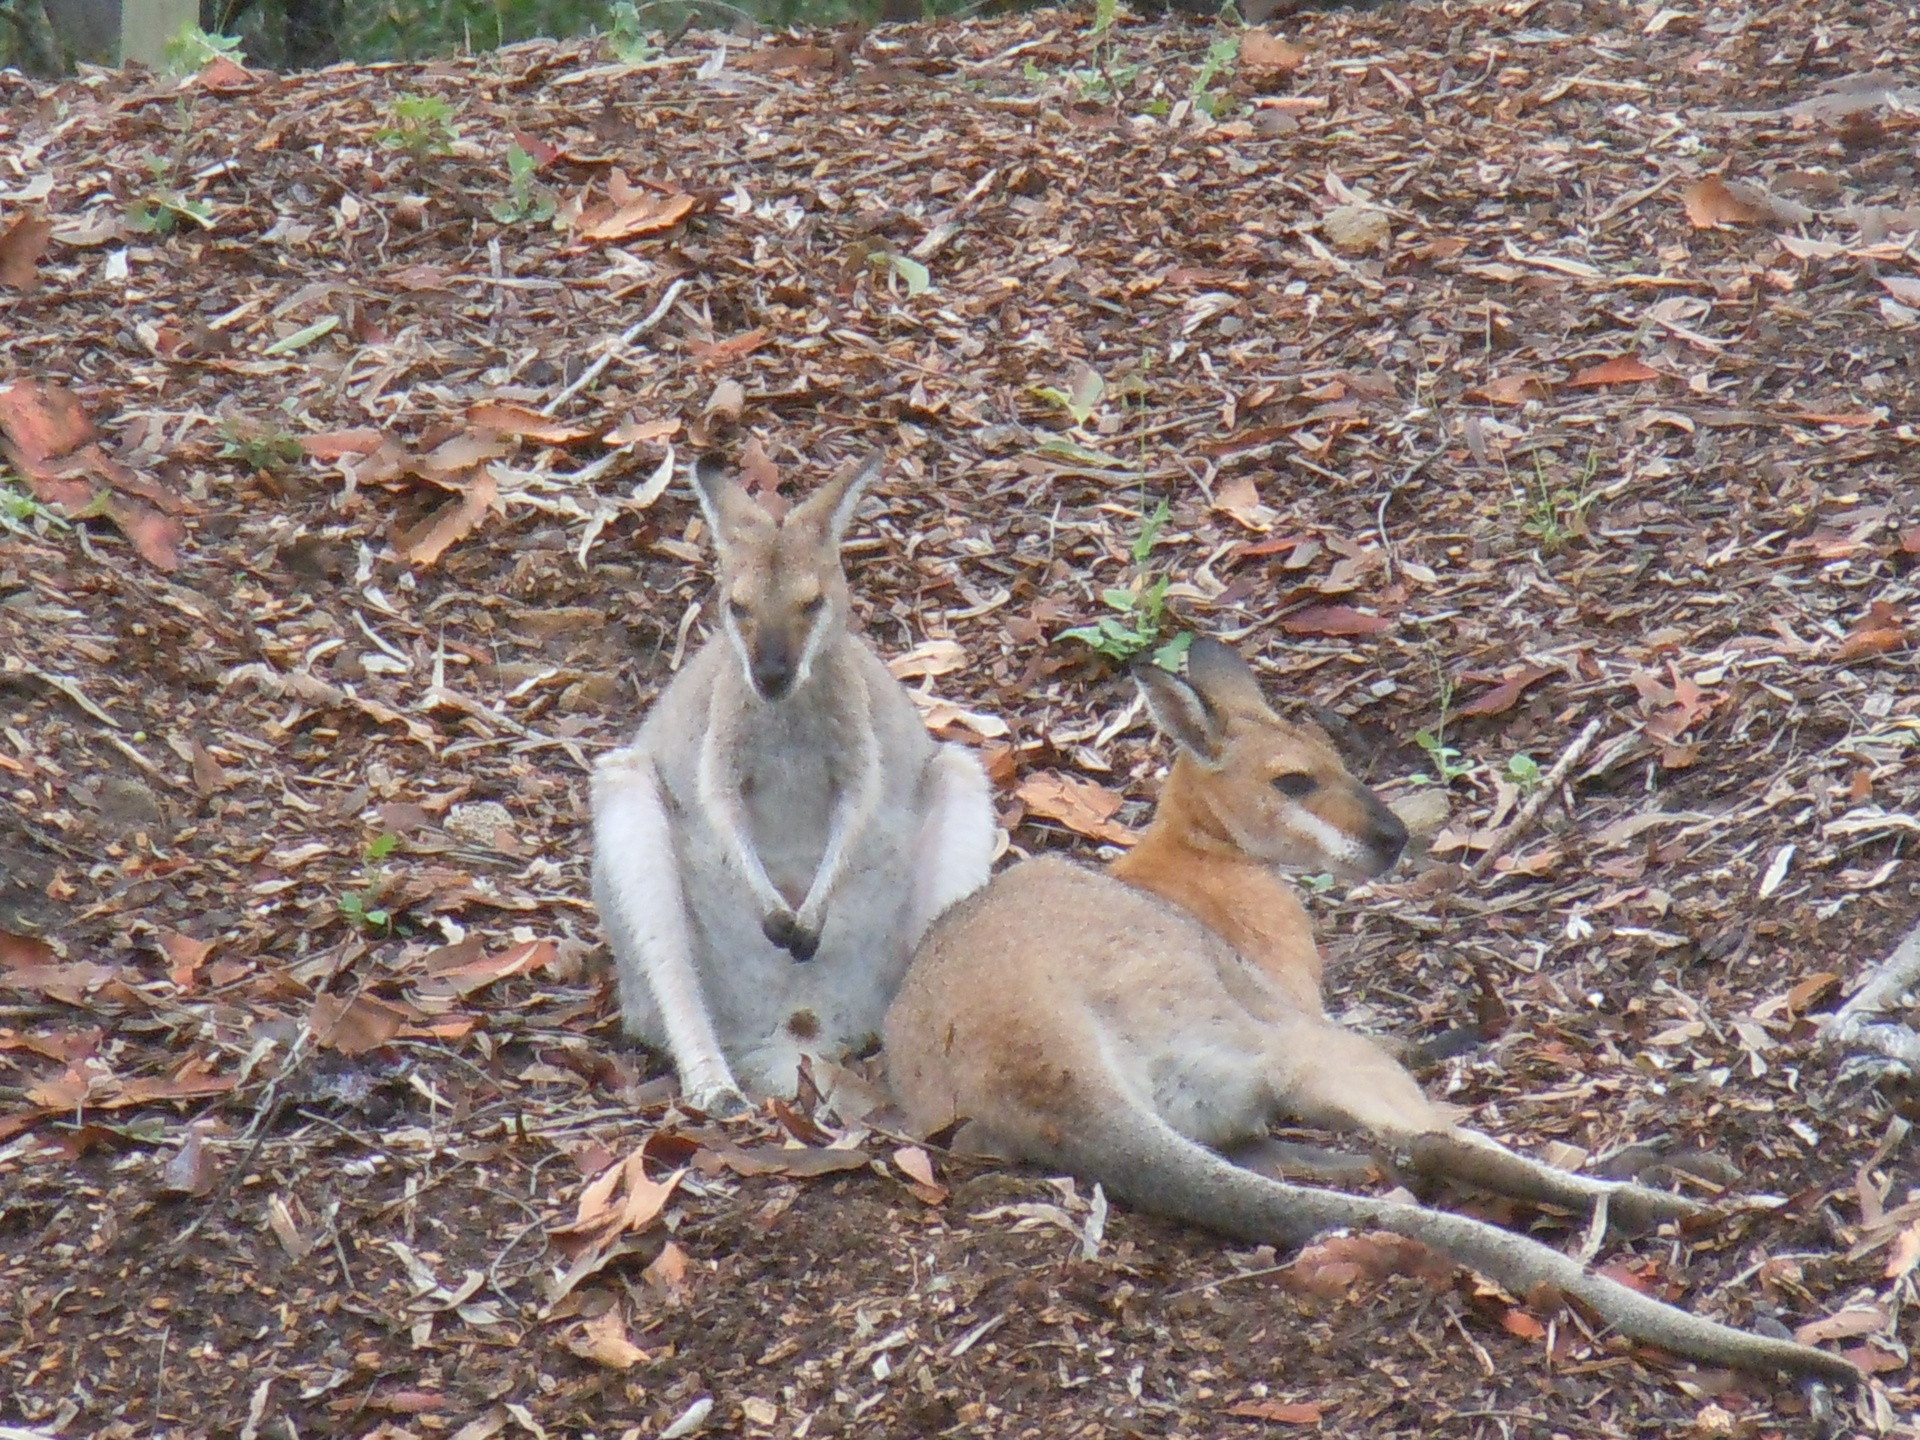 Mum & Dad Wallabies